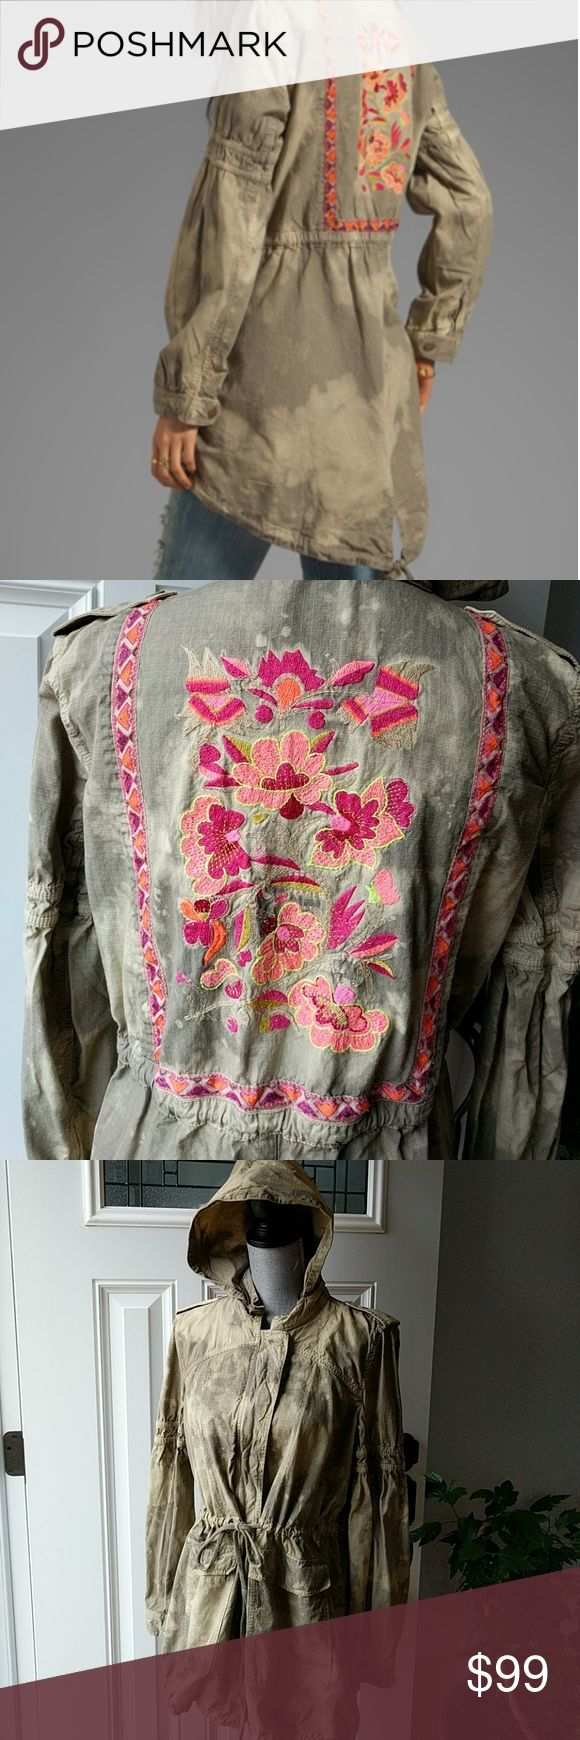 Free People RARE Festival Anorak Jacket Excellent condition, no flaws. Hard to find, sold out everywhere! Gorgeous embroidery on back, drawstring waist and bottom hem, hidden front zipper with snap flap closure. 100% cotton. Hood zips into collar so offers flexibility to wear the hood or not. Free People Jackets & Coats